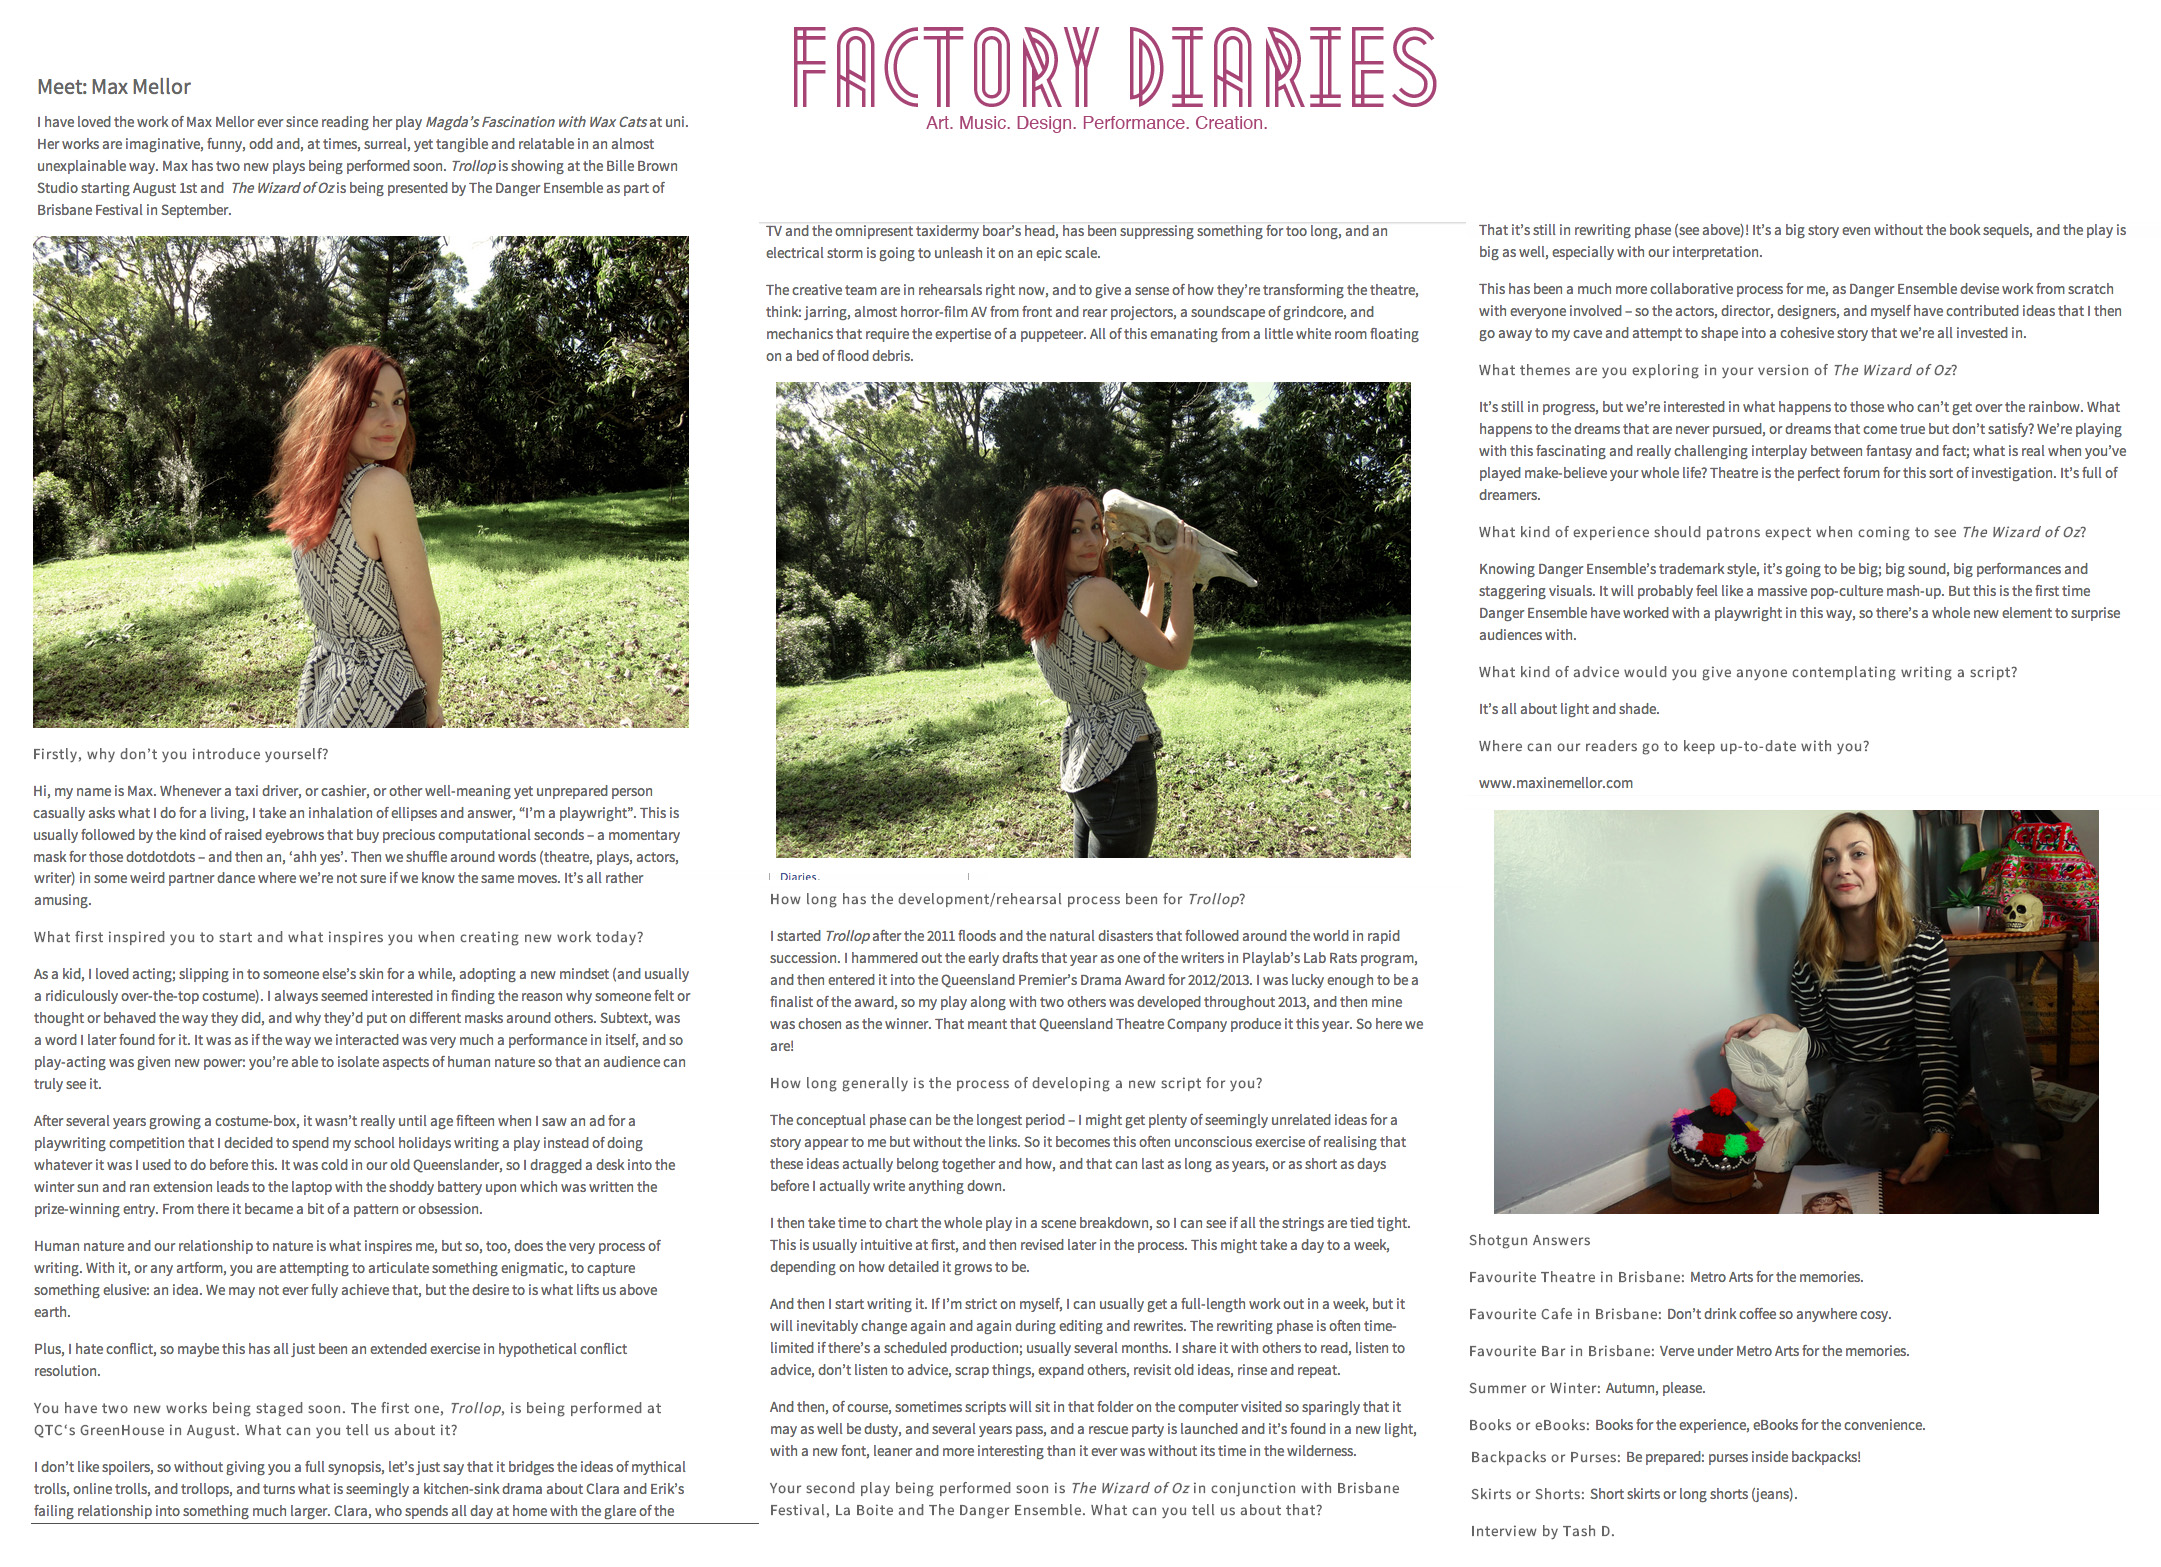 Factory Diaries Interview Blog